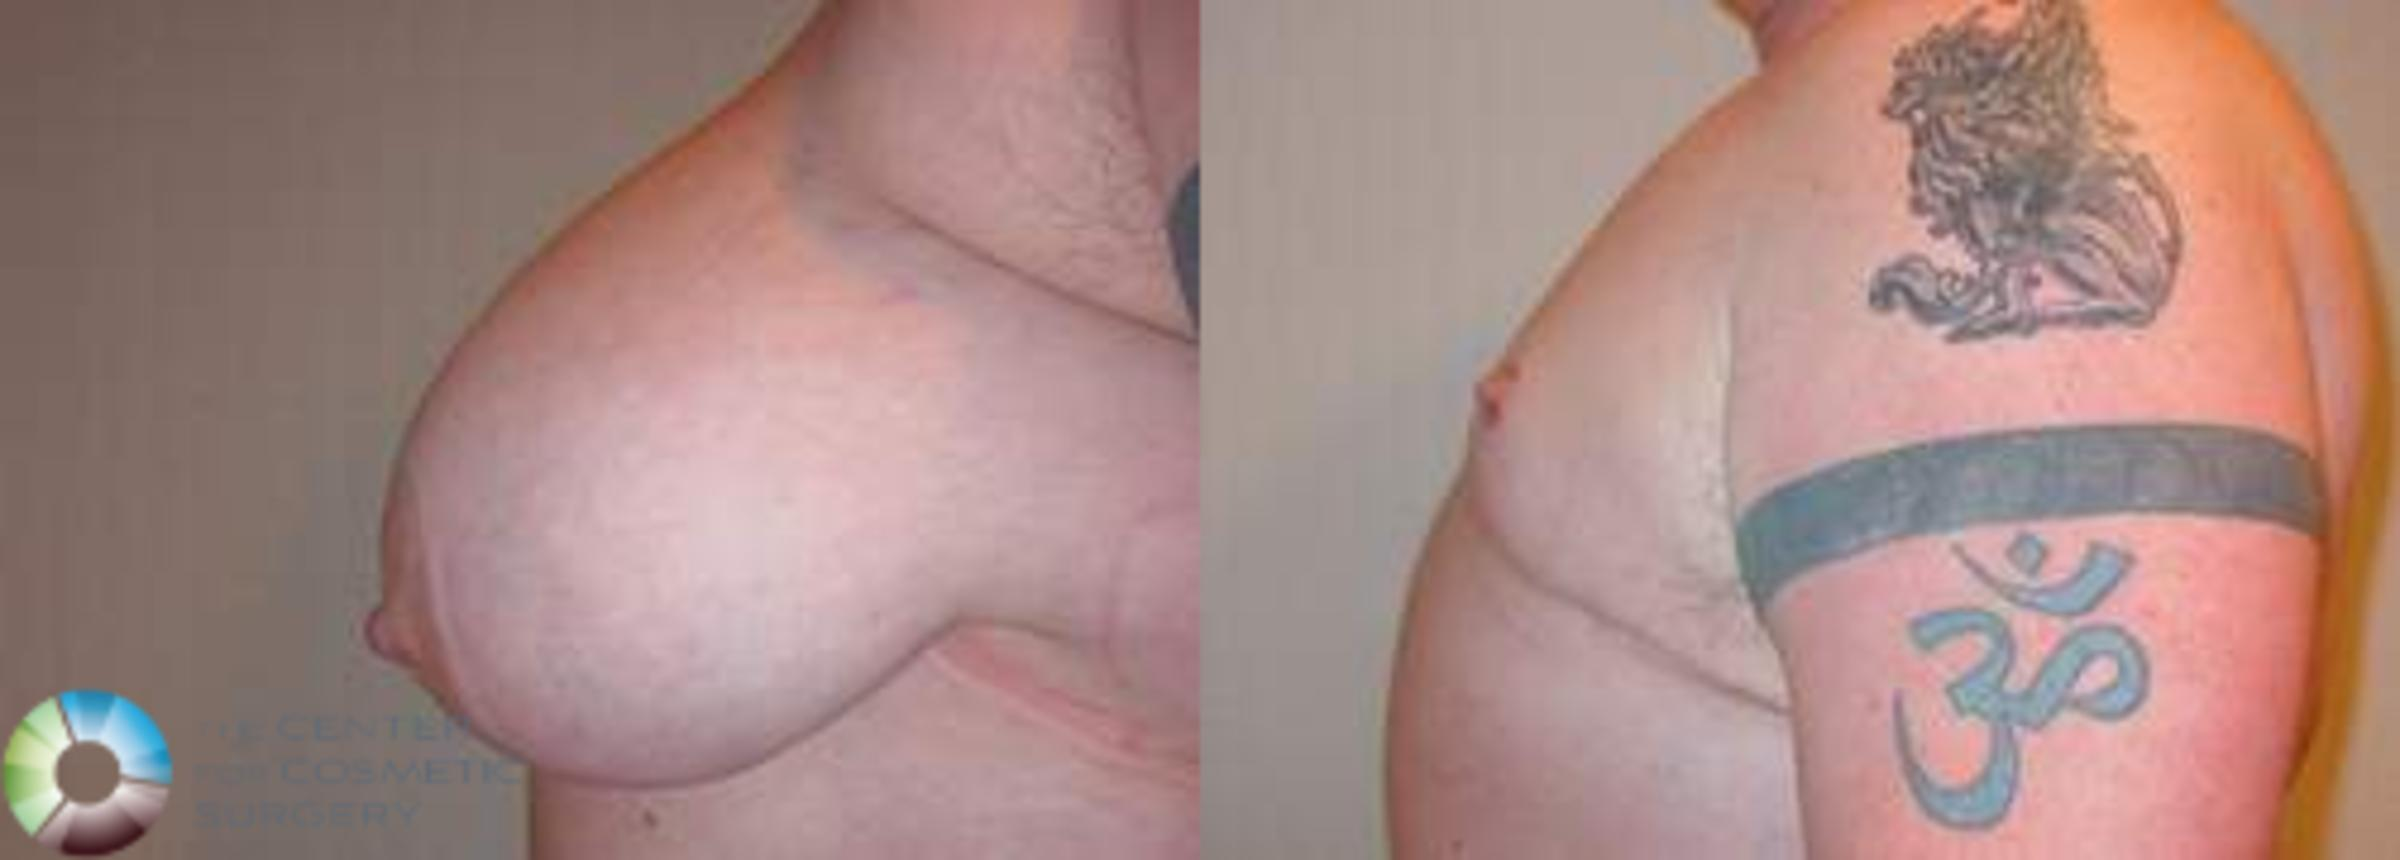 FTM Top Surgery/Chest Masculinization Case 559 Before & After View #3 | Golden, CO | The Center for Cosmetic Surgery